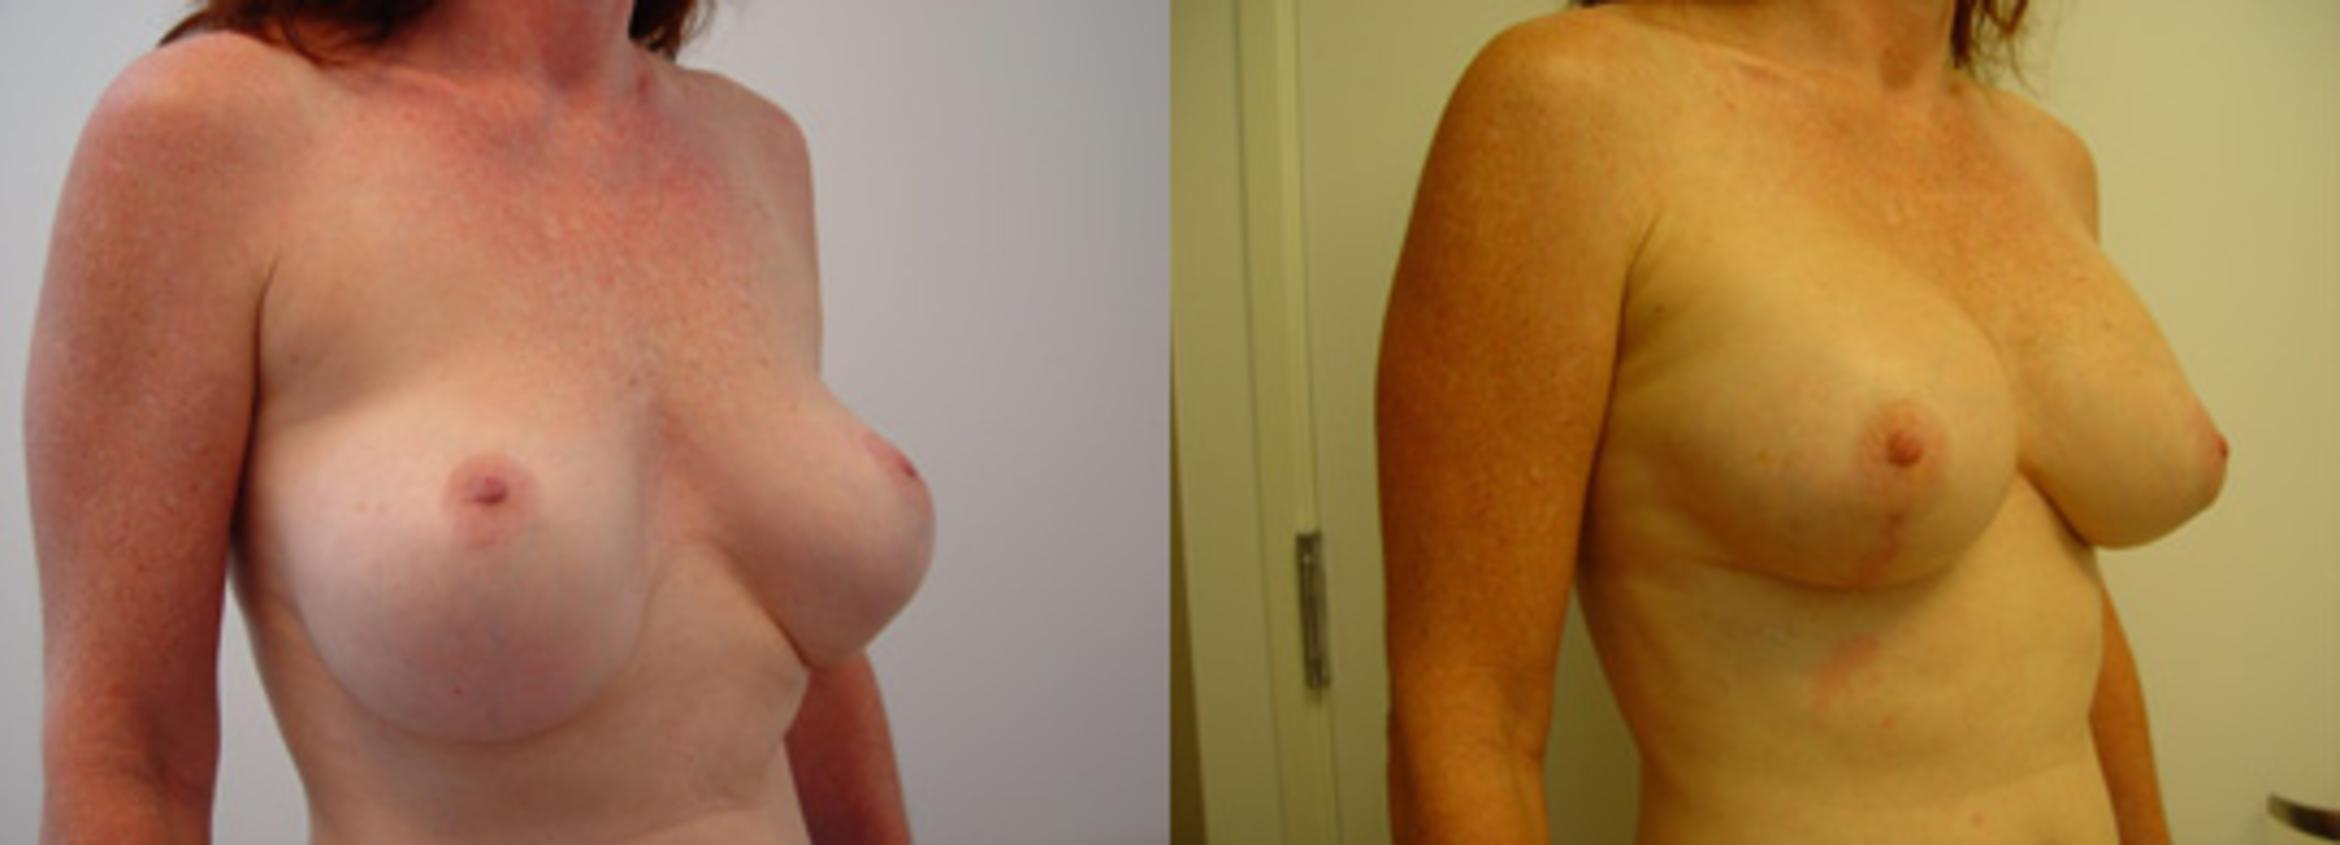 Breast Lift with Implants Case 57 Before & After View #1 | Honolulu, HI | Shim Ching, MD: Asia Pacific Plastic Surgery